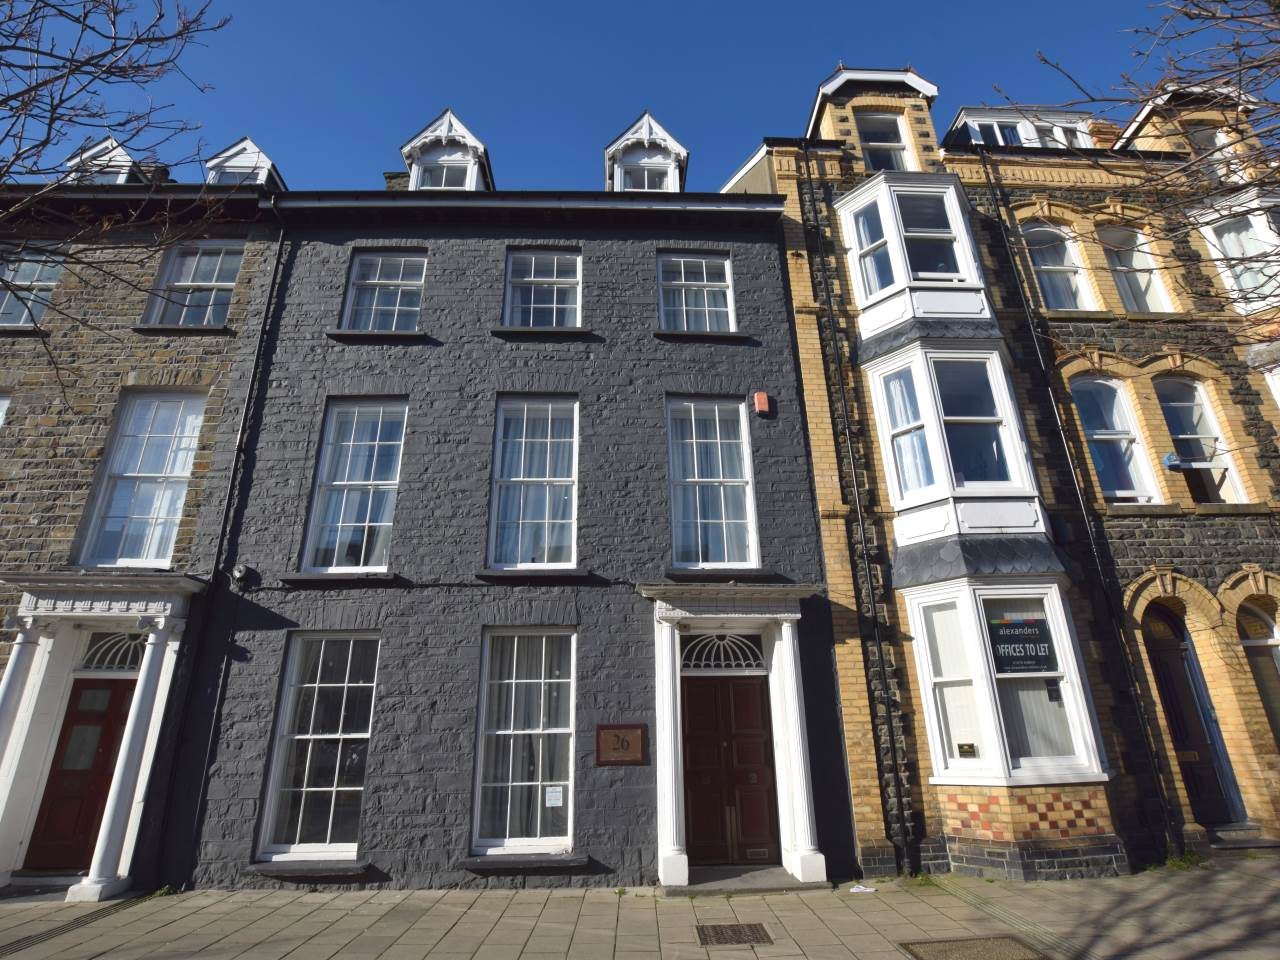 3 bed flat to rent in North Parade, Aberystwyth, SY23